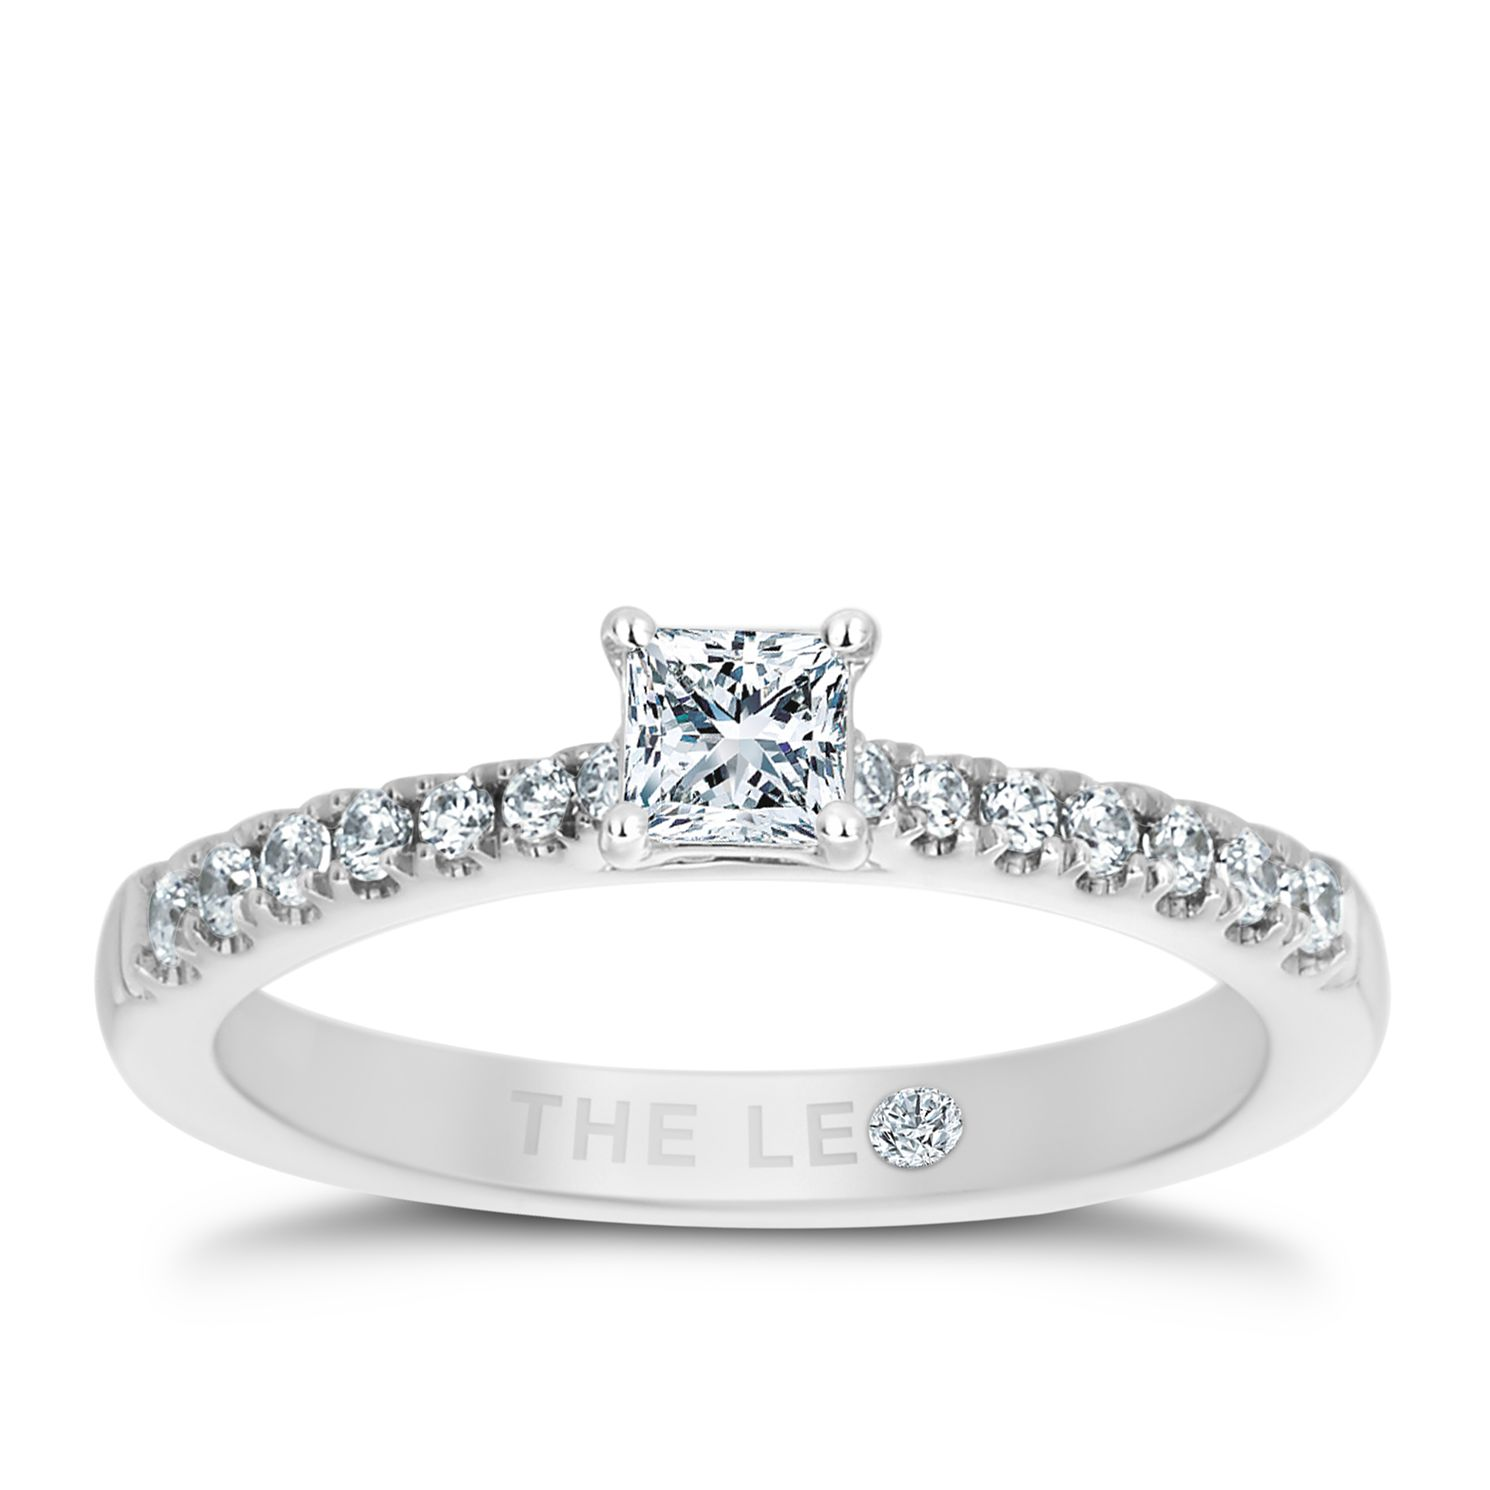 Leo Diamond 18ct White Gold 1/2ct Ii1 Diamond Ring - Product number 5513502